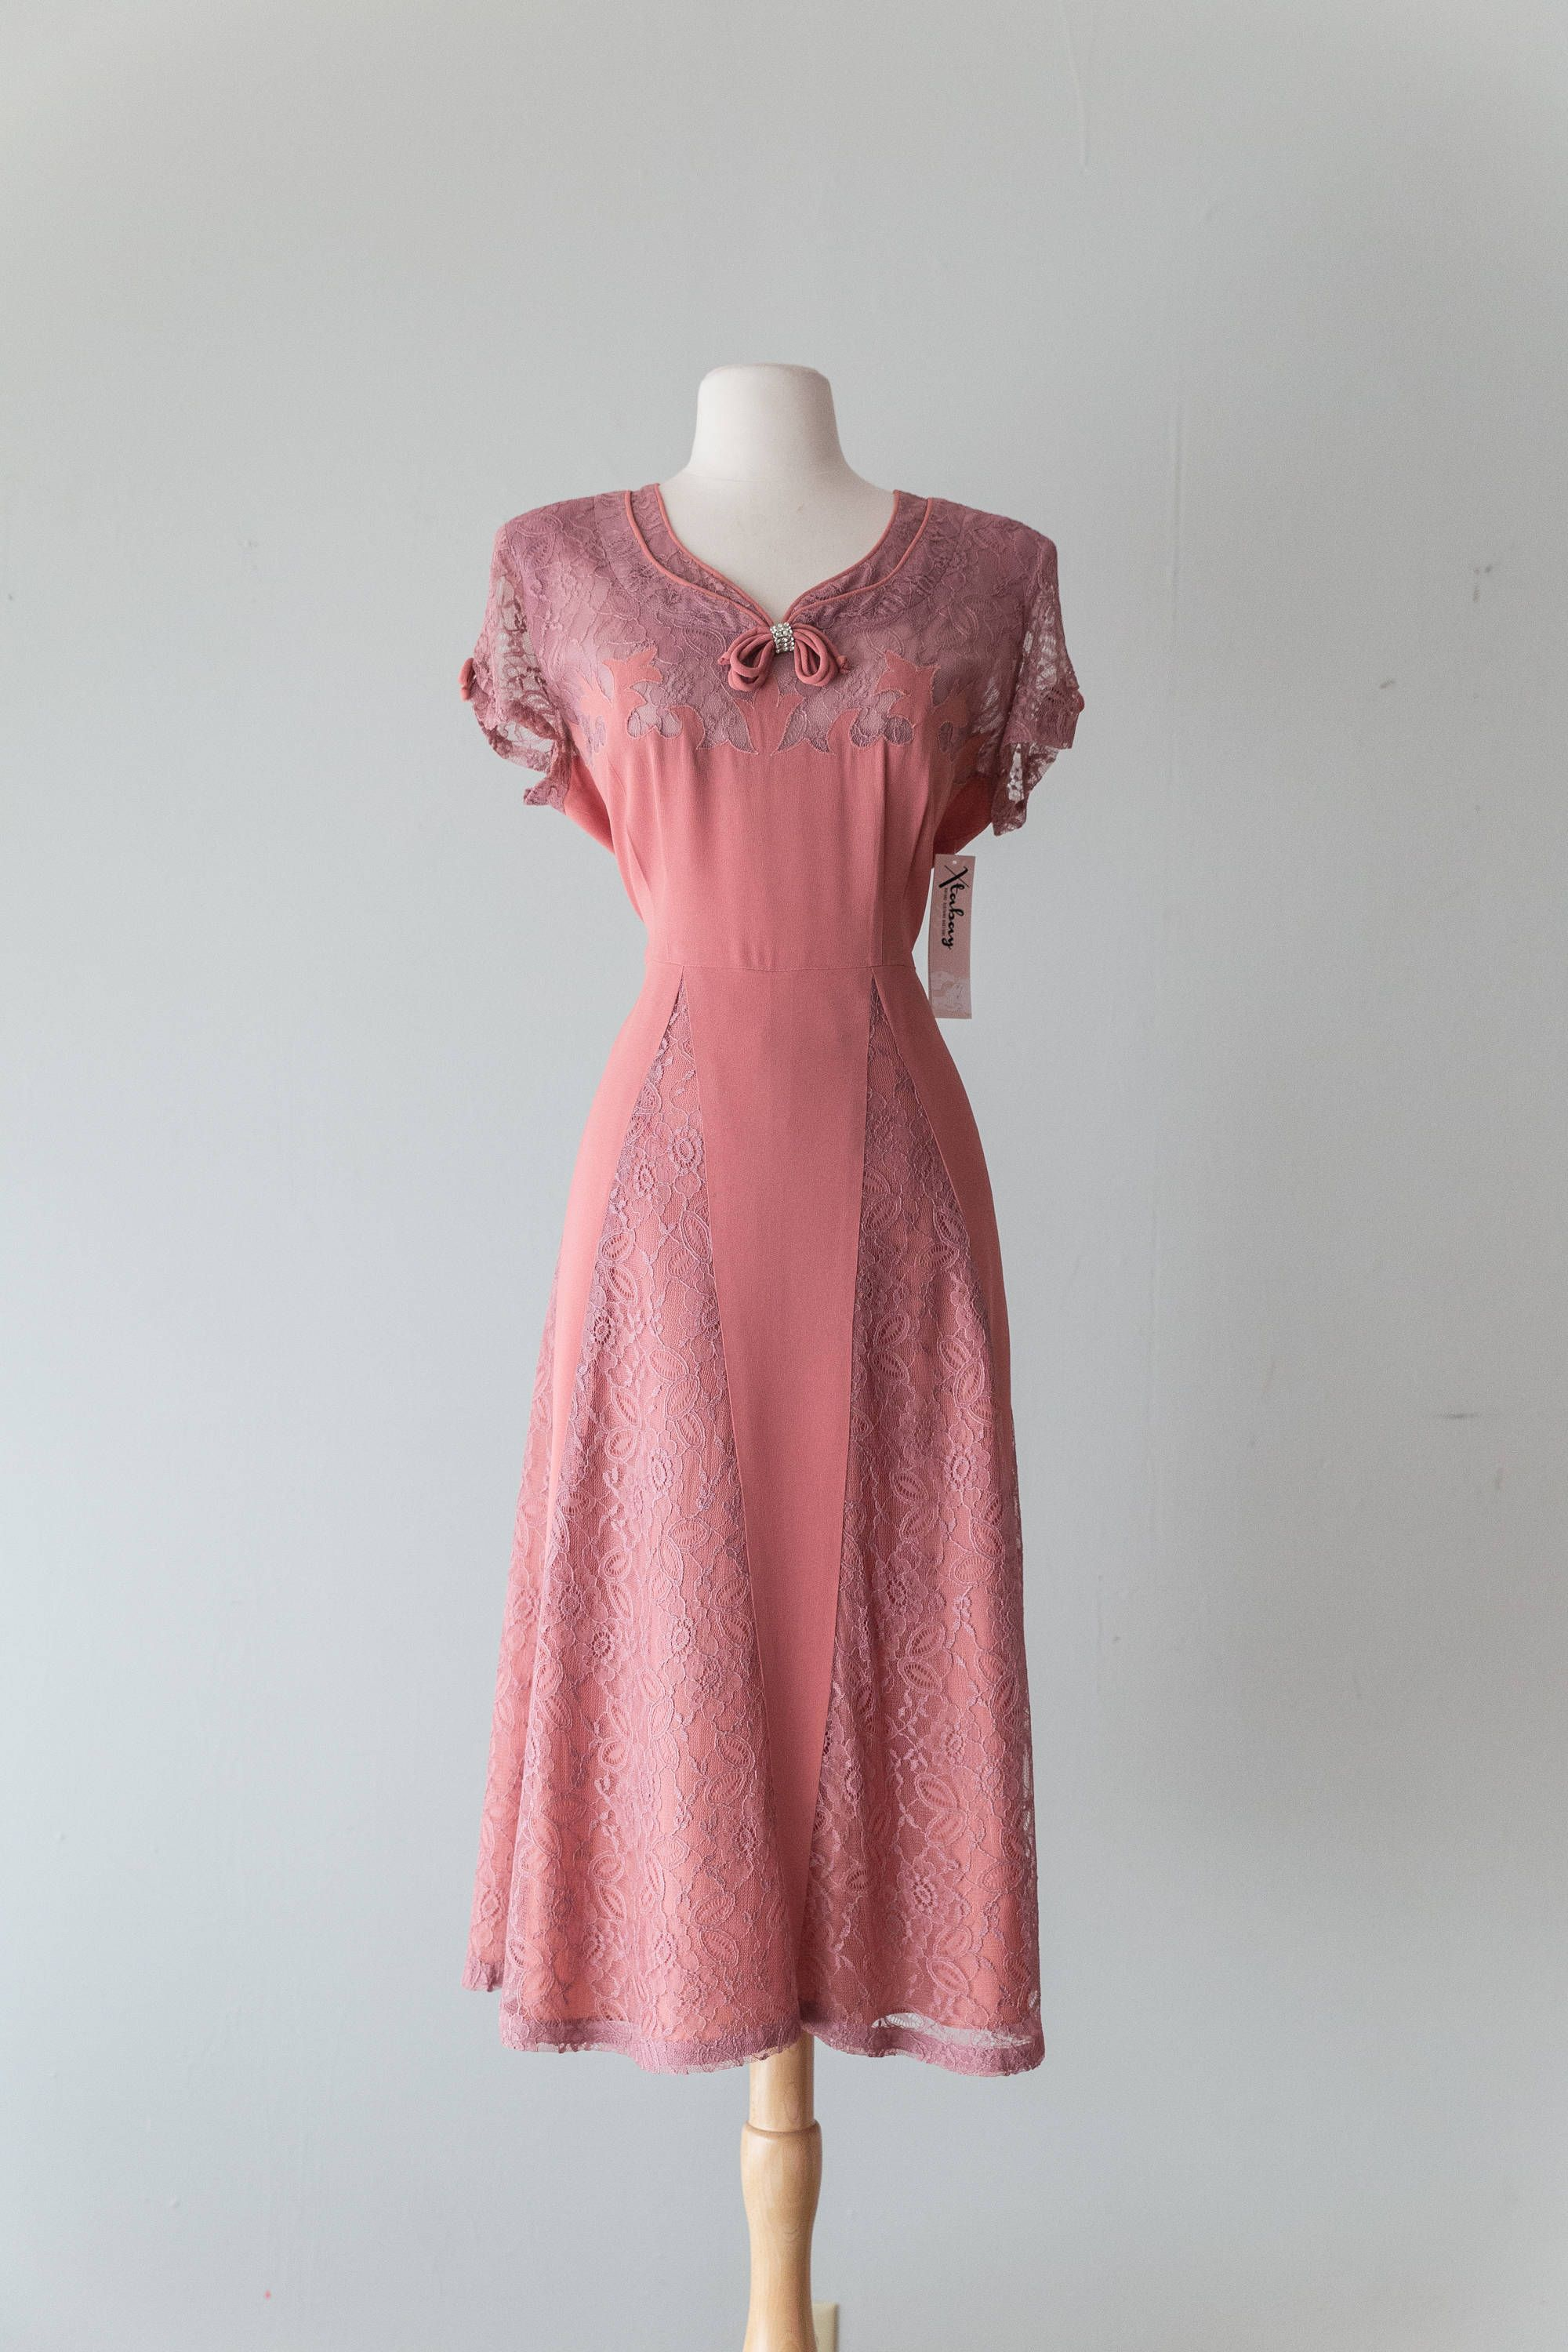 Vintage 1940s Dress - Late 40s Dusty Rose Rayon Cocktail Dress With ...